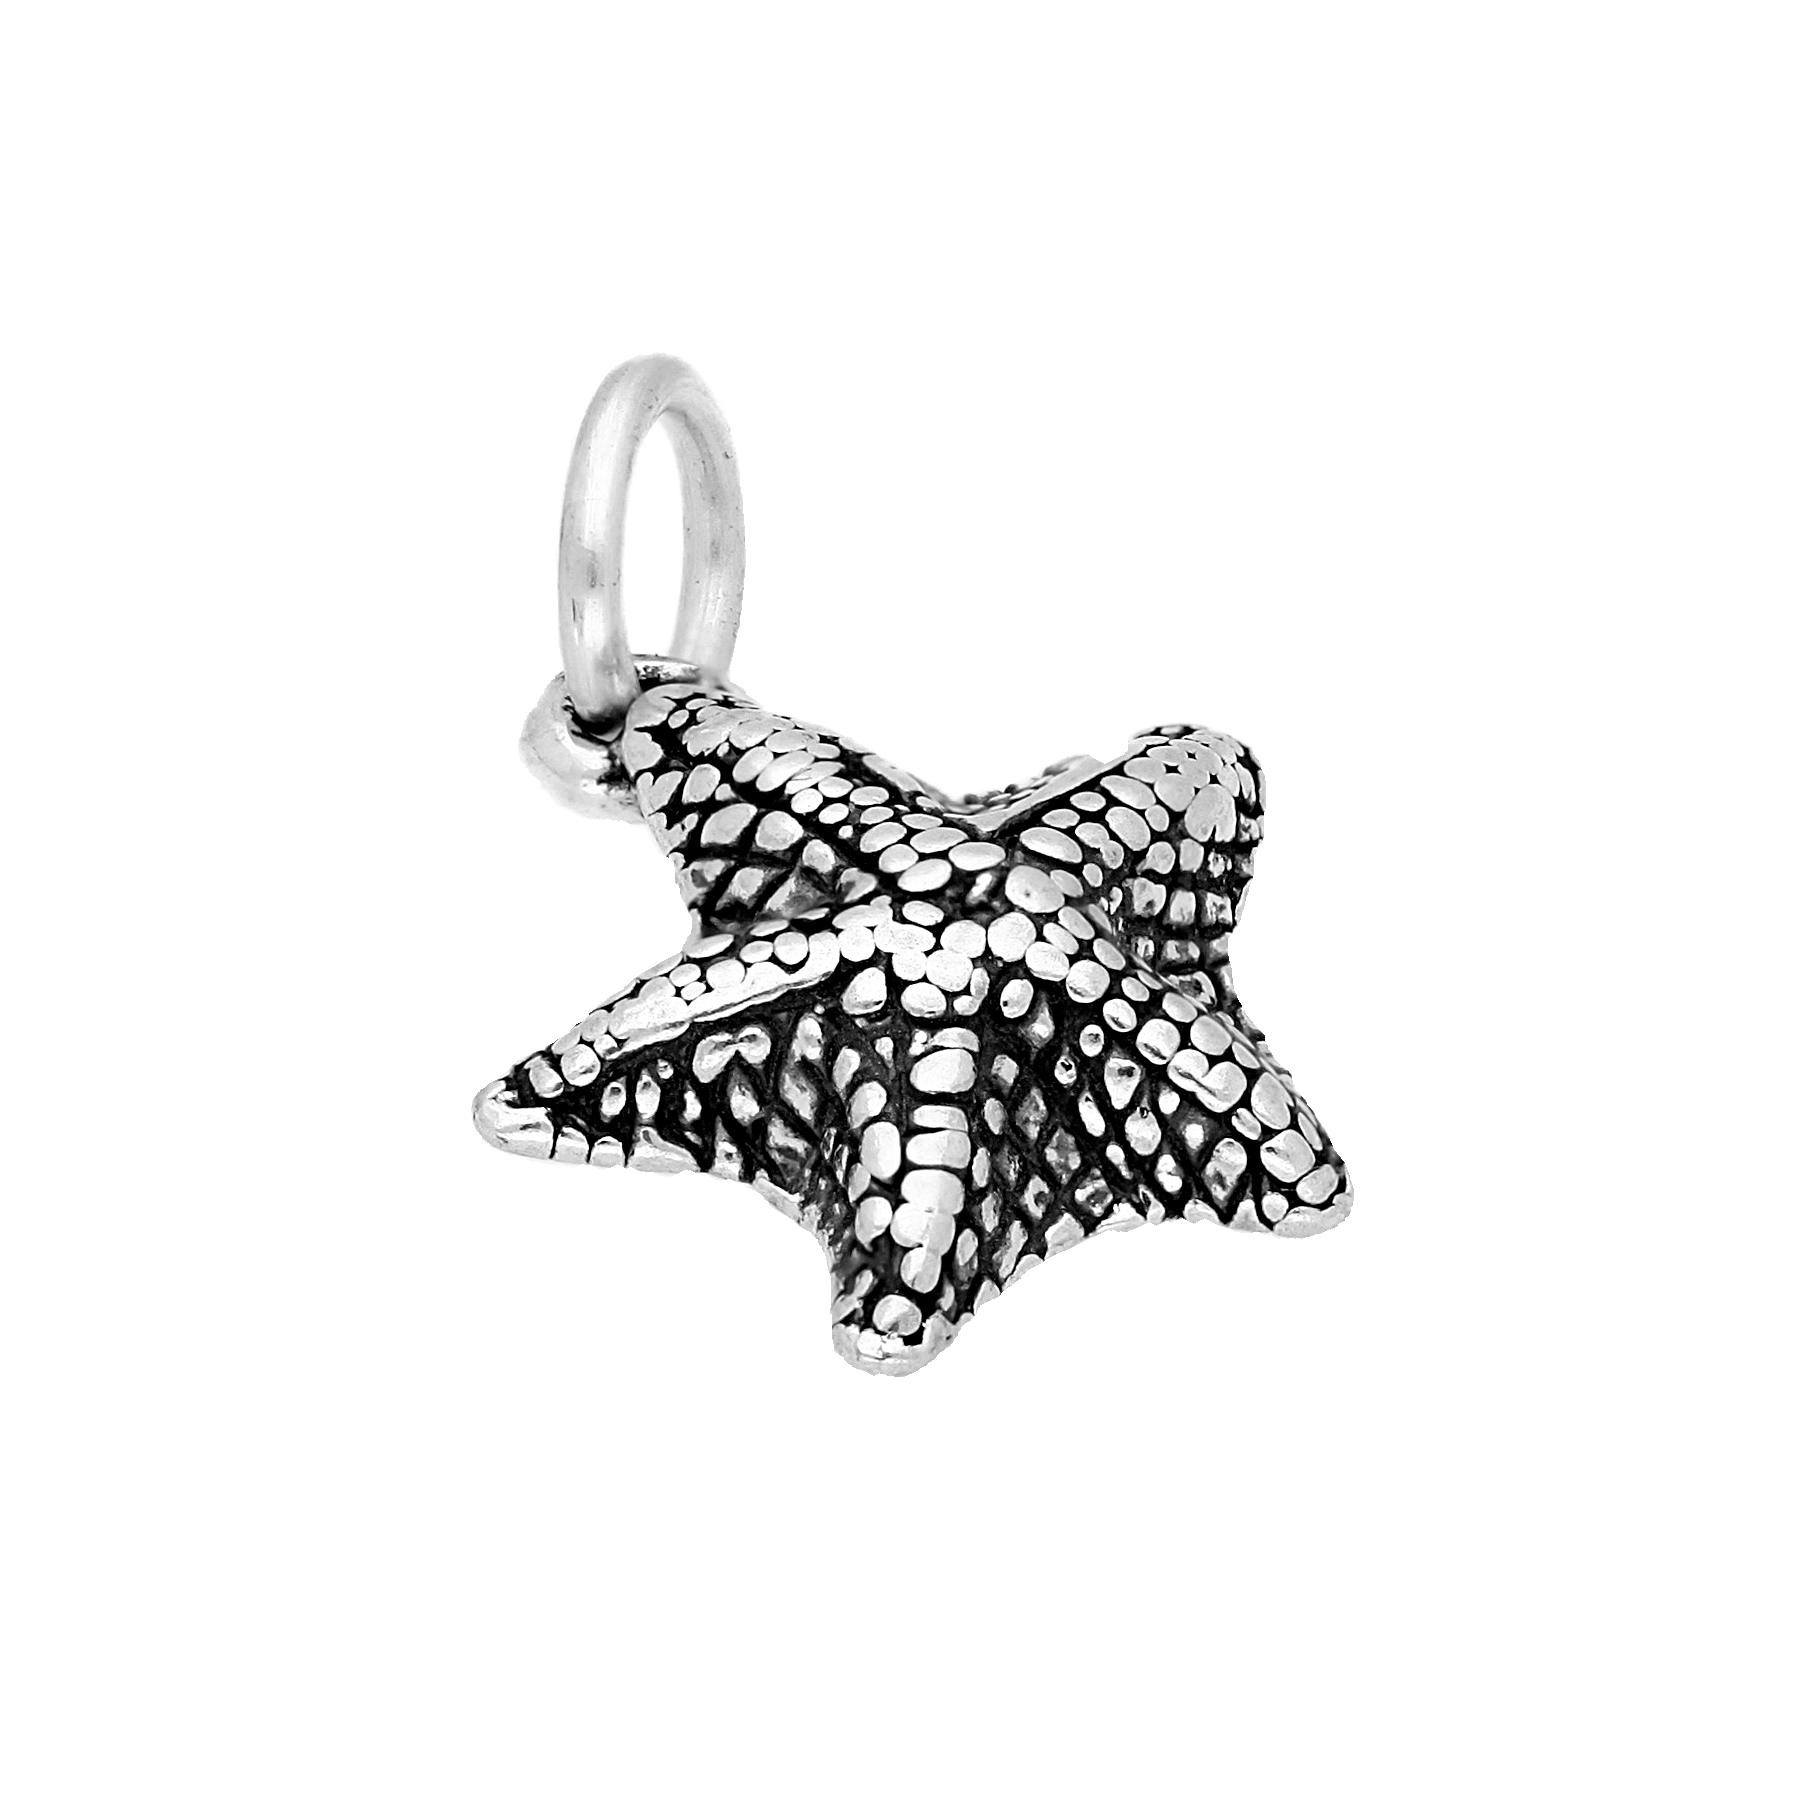 An image of Sterling Silver Bat Starfish Charm